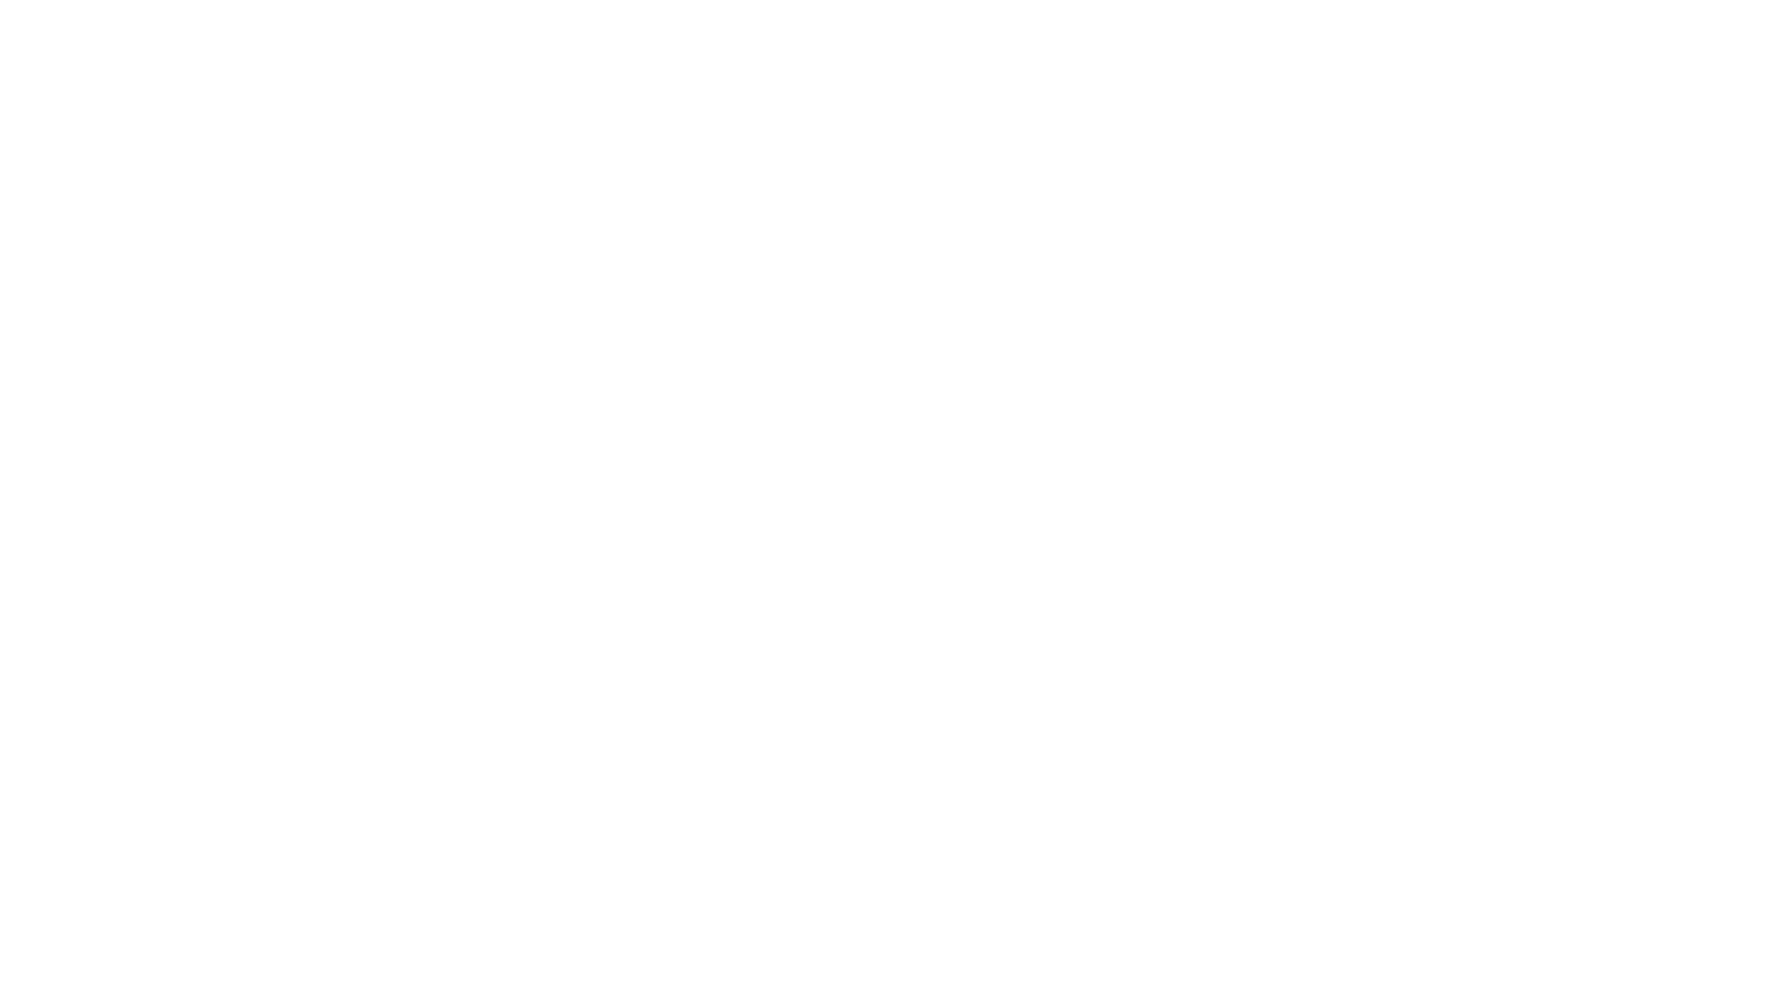 THE ONLY IOT EVENT SPECIFICALLY DESIGNED FOR THE OIL & GAS